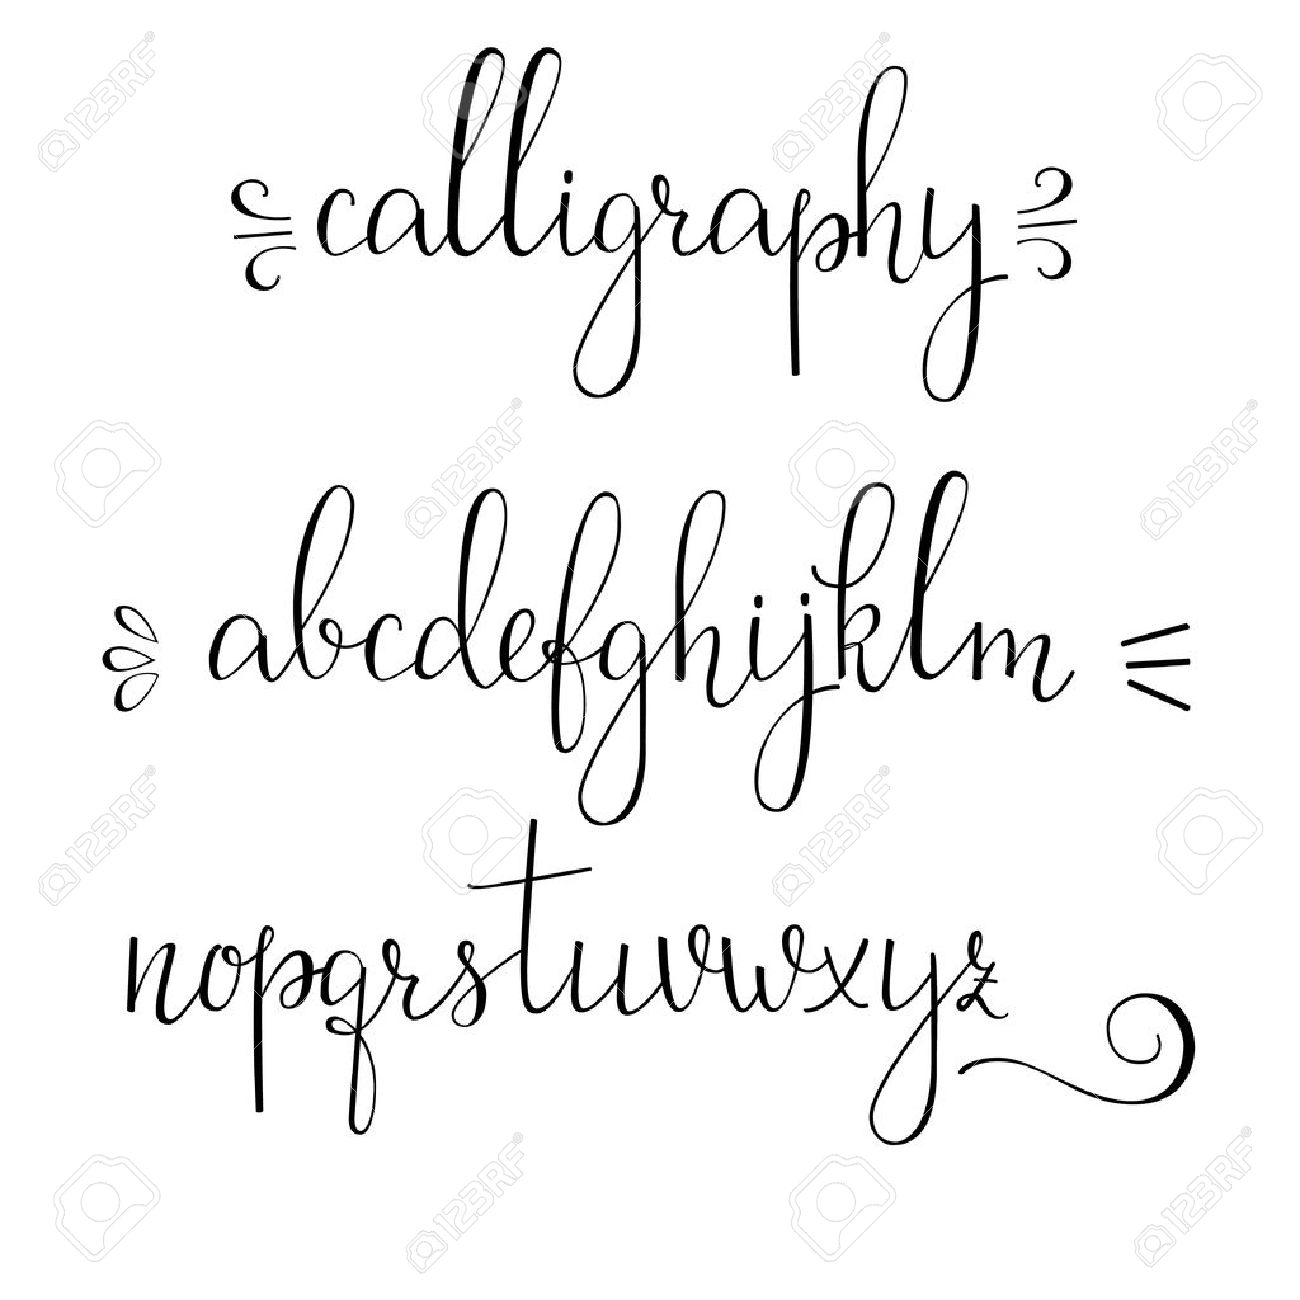 Handwritten Pointed Pen Ink Style Modern Calligraphy Cursive Font Stock Vector